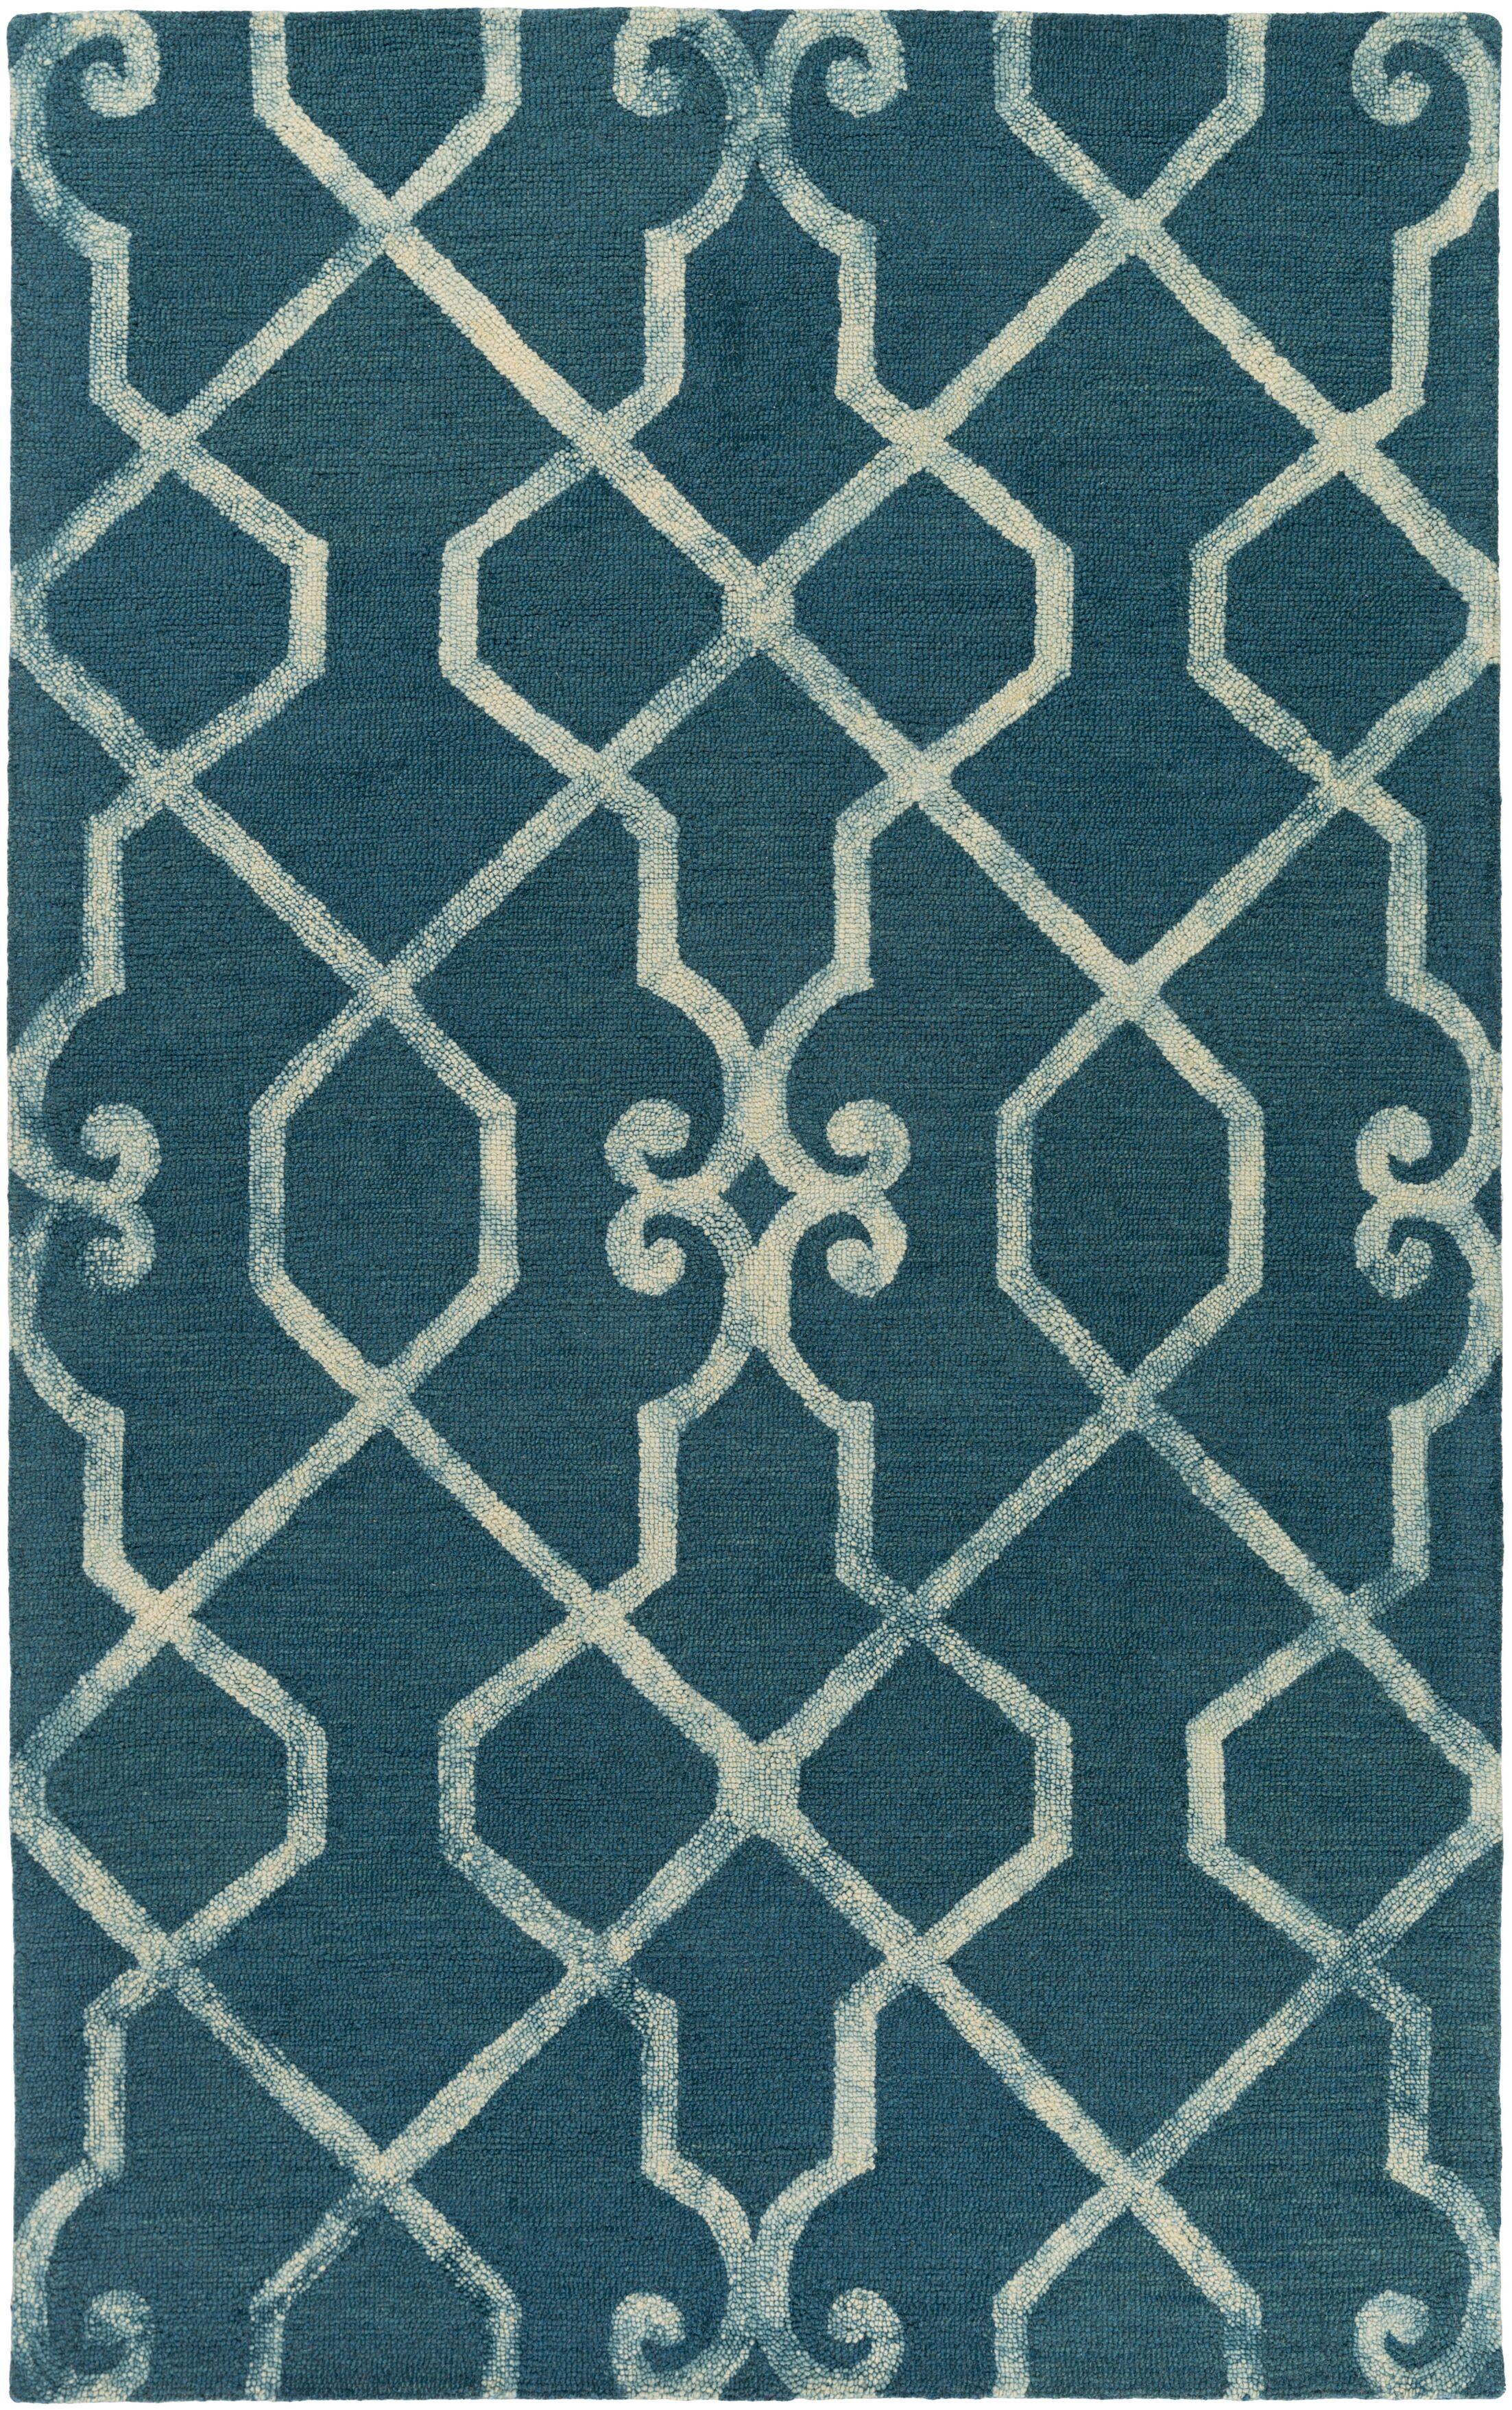 Sandhill Hand-Tufted Teal/Ivory Area Rug Rug Size: Rectangle 9' x 13'